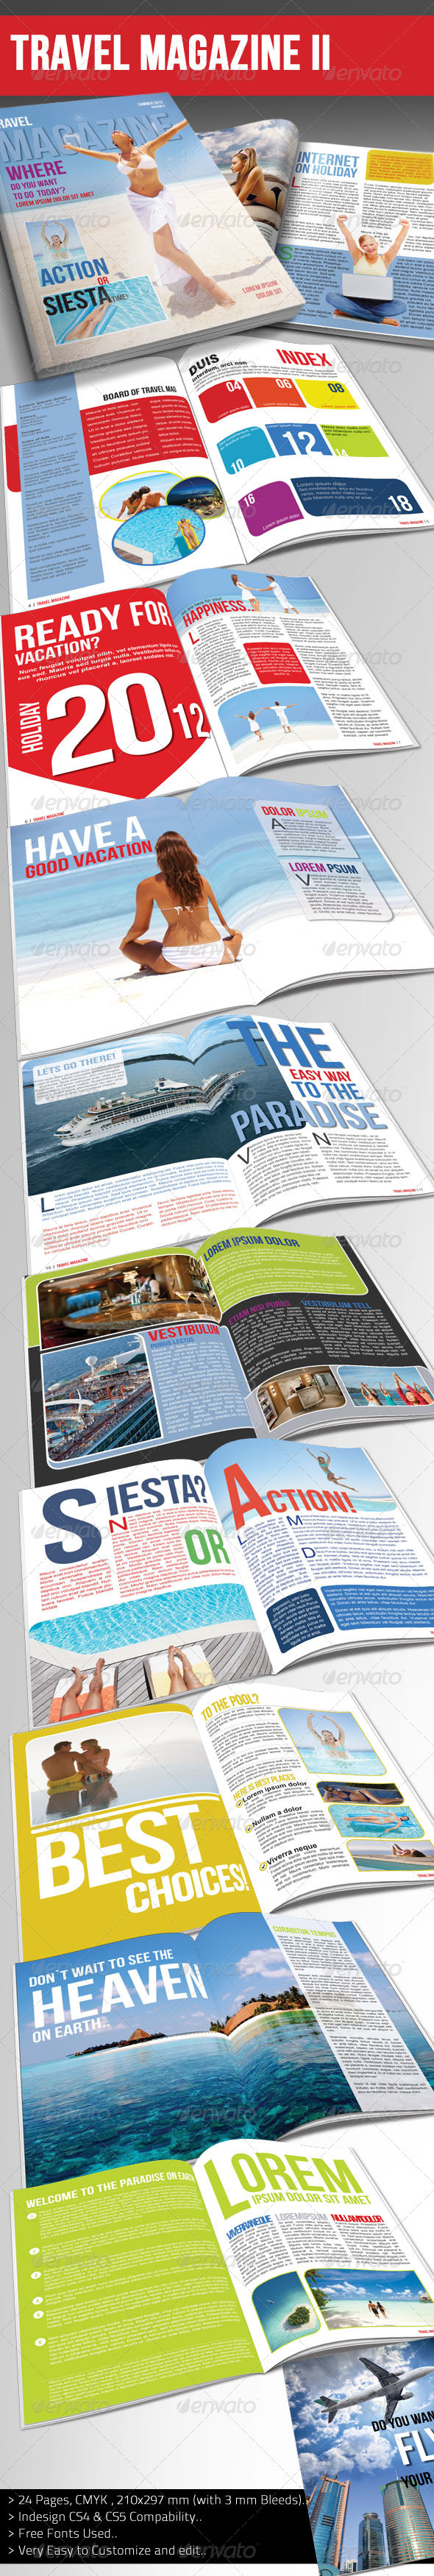 Travel Magazine Template Ver.II - Magazines Print Templates